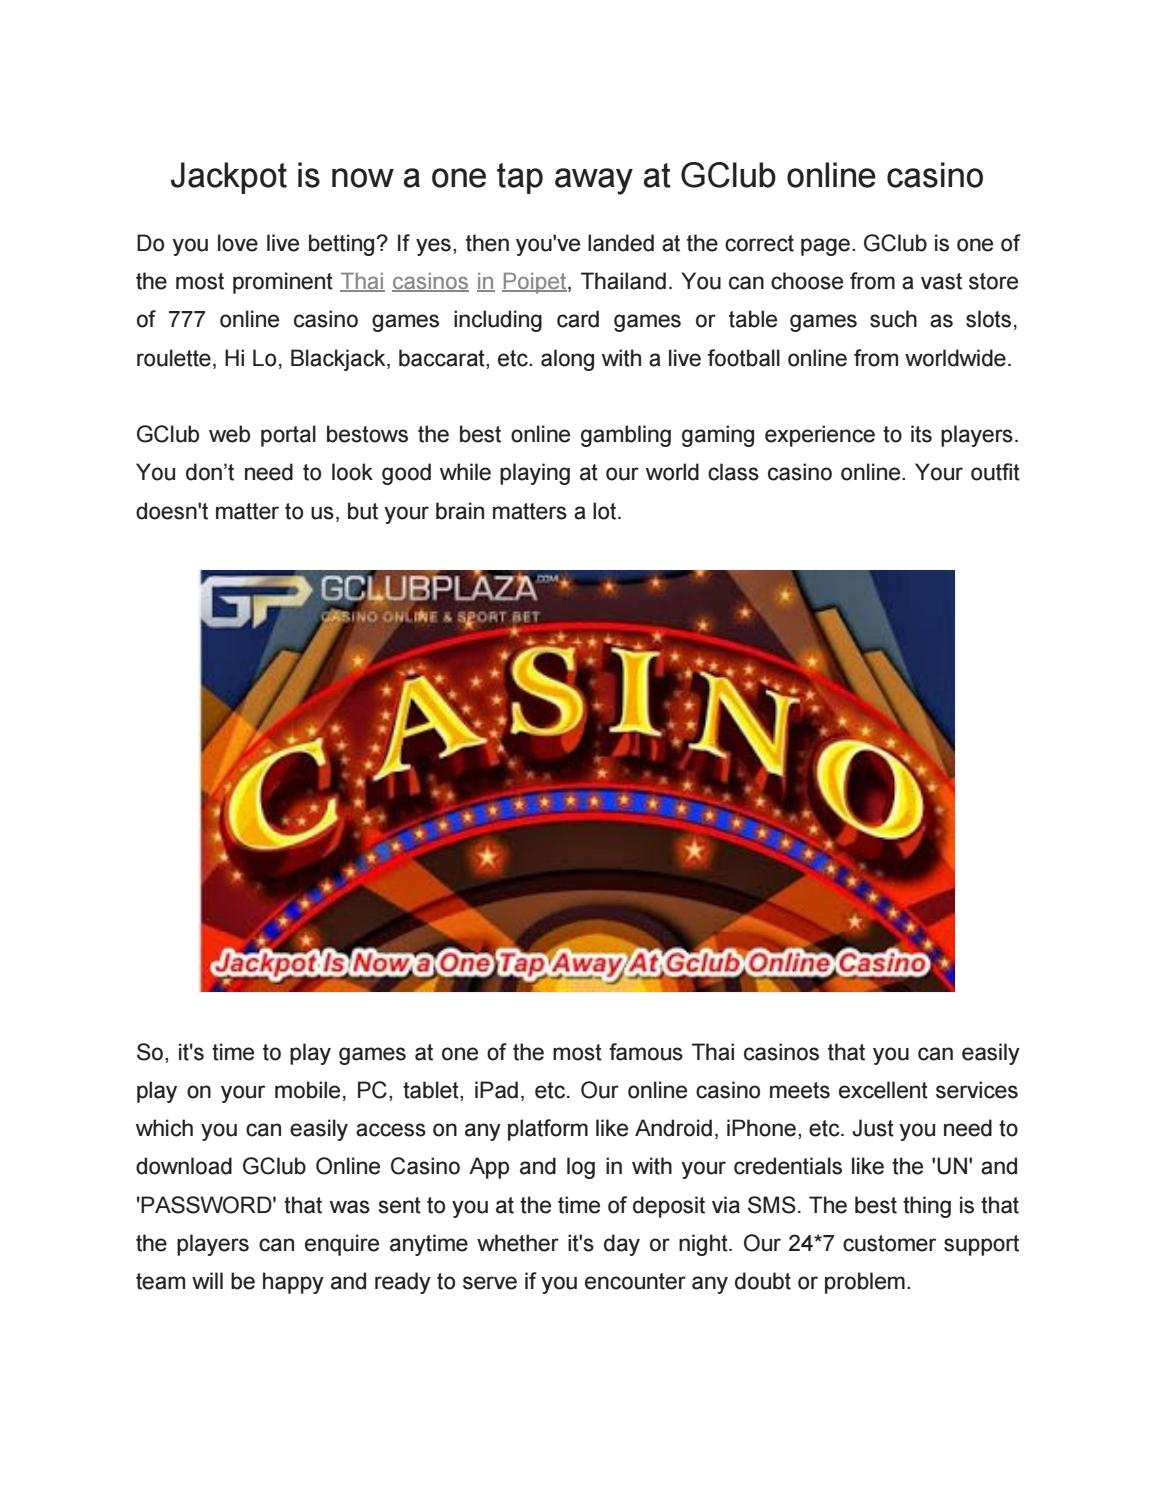 Jackpot Is Now A One Tap Away At Gclub Online Casino By Gclubplaza